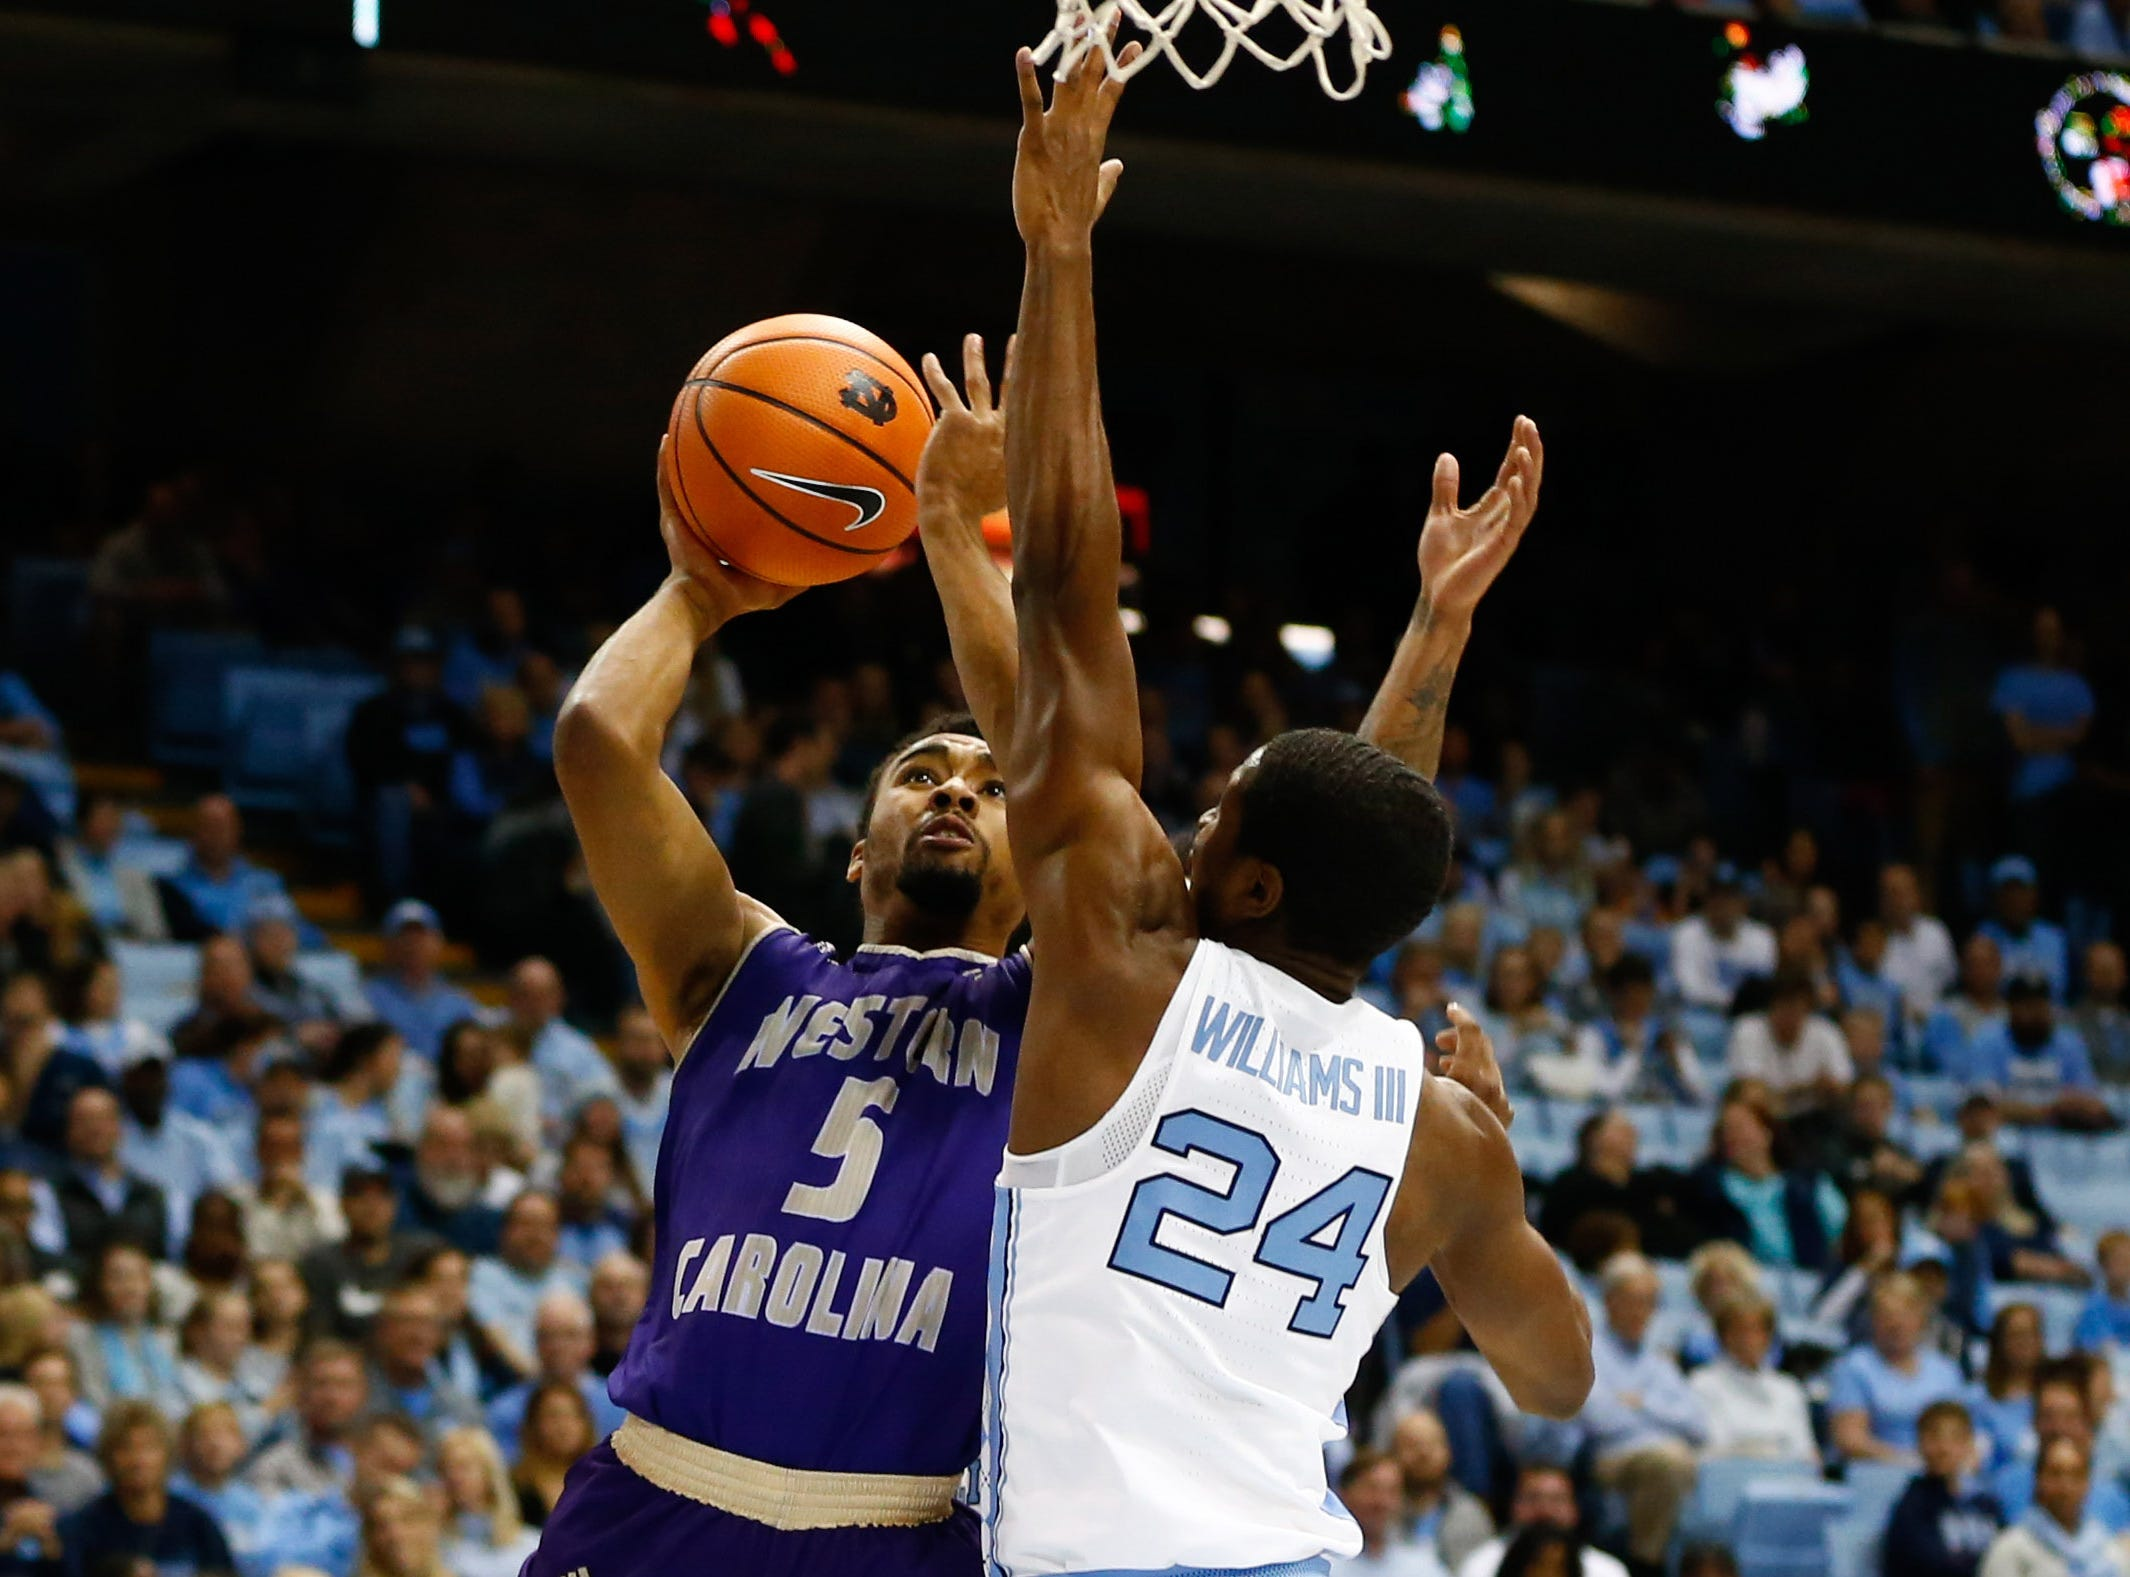 Dec 6, 2017; Chapel Hill, NC, USA; Western Carolina Catamounts guard Devin Peterson (5) shoots the ball against North Carolina Tar Heels guard Kenny Williams (24) in the first half at Dean E. Smith Center. Mandatory Credit: Jeremy Brevard-USA TODAY Sports